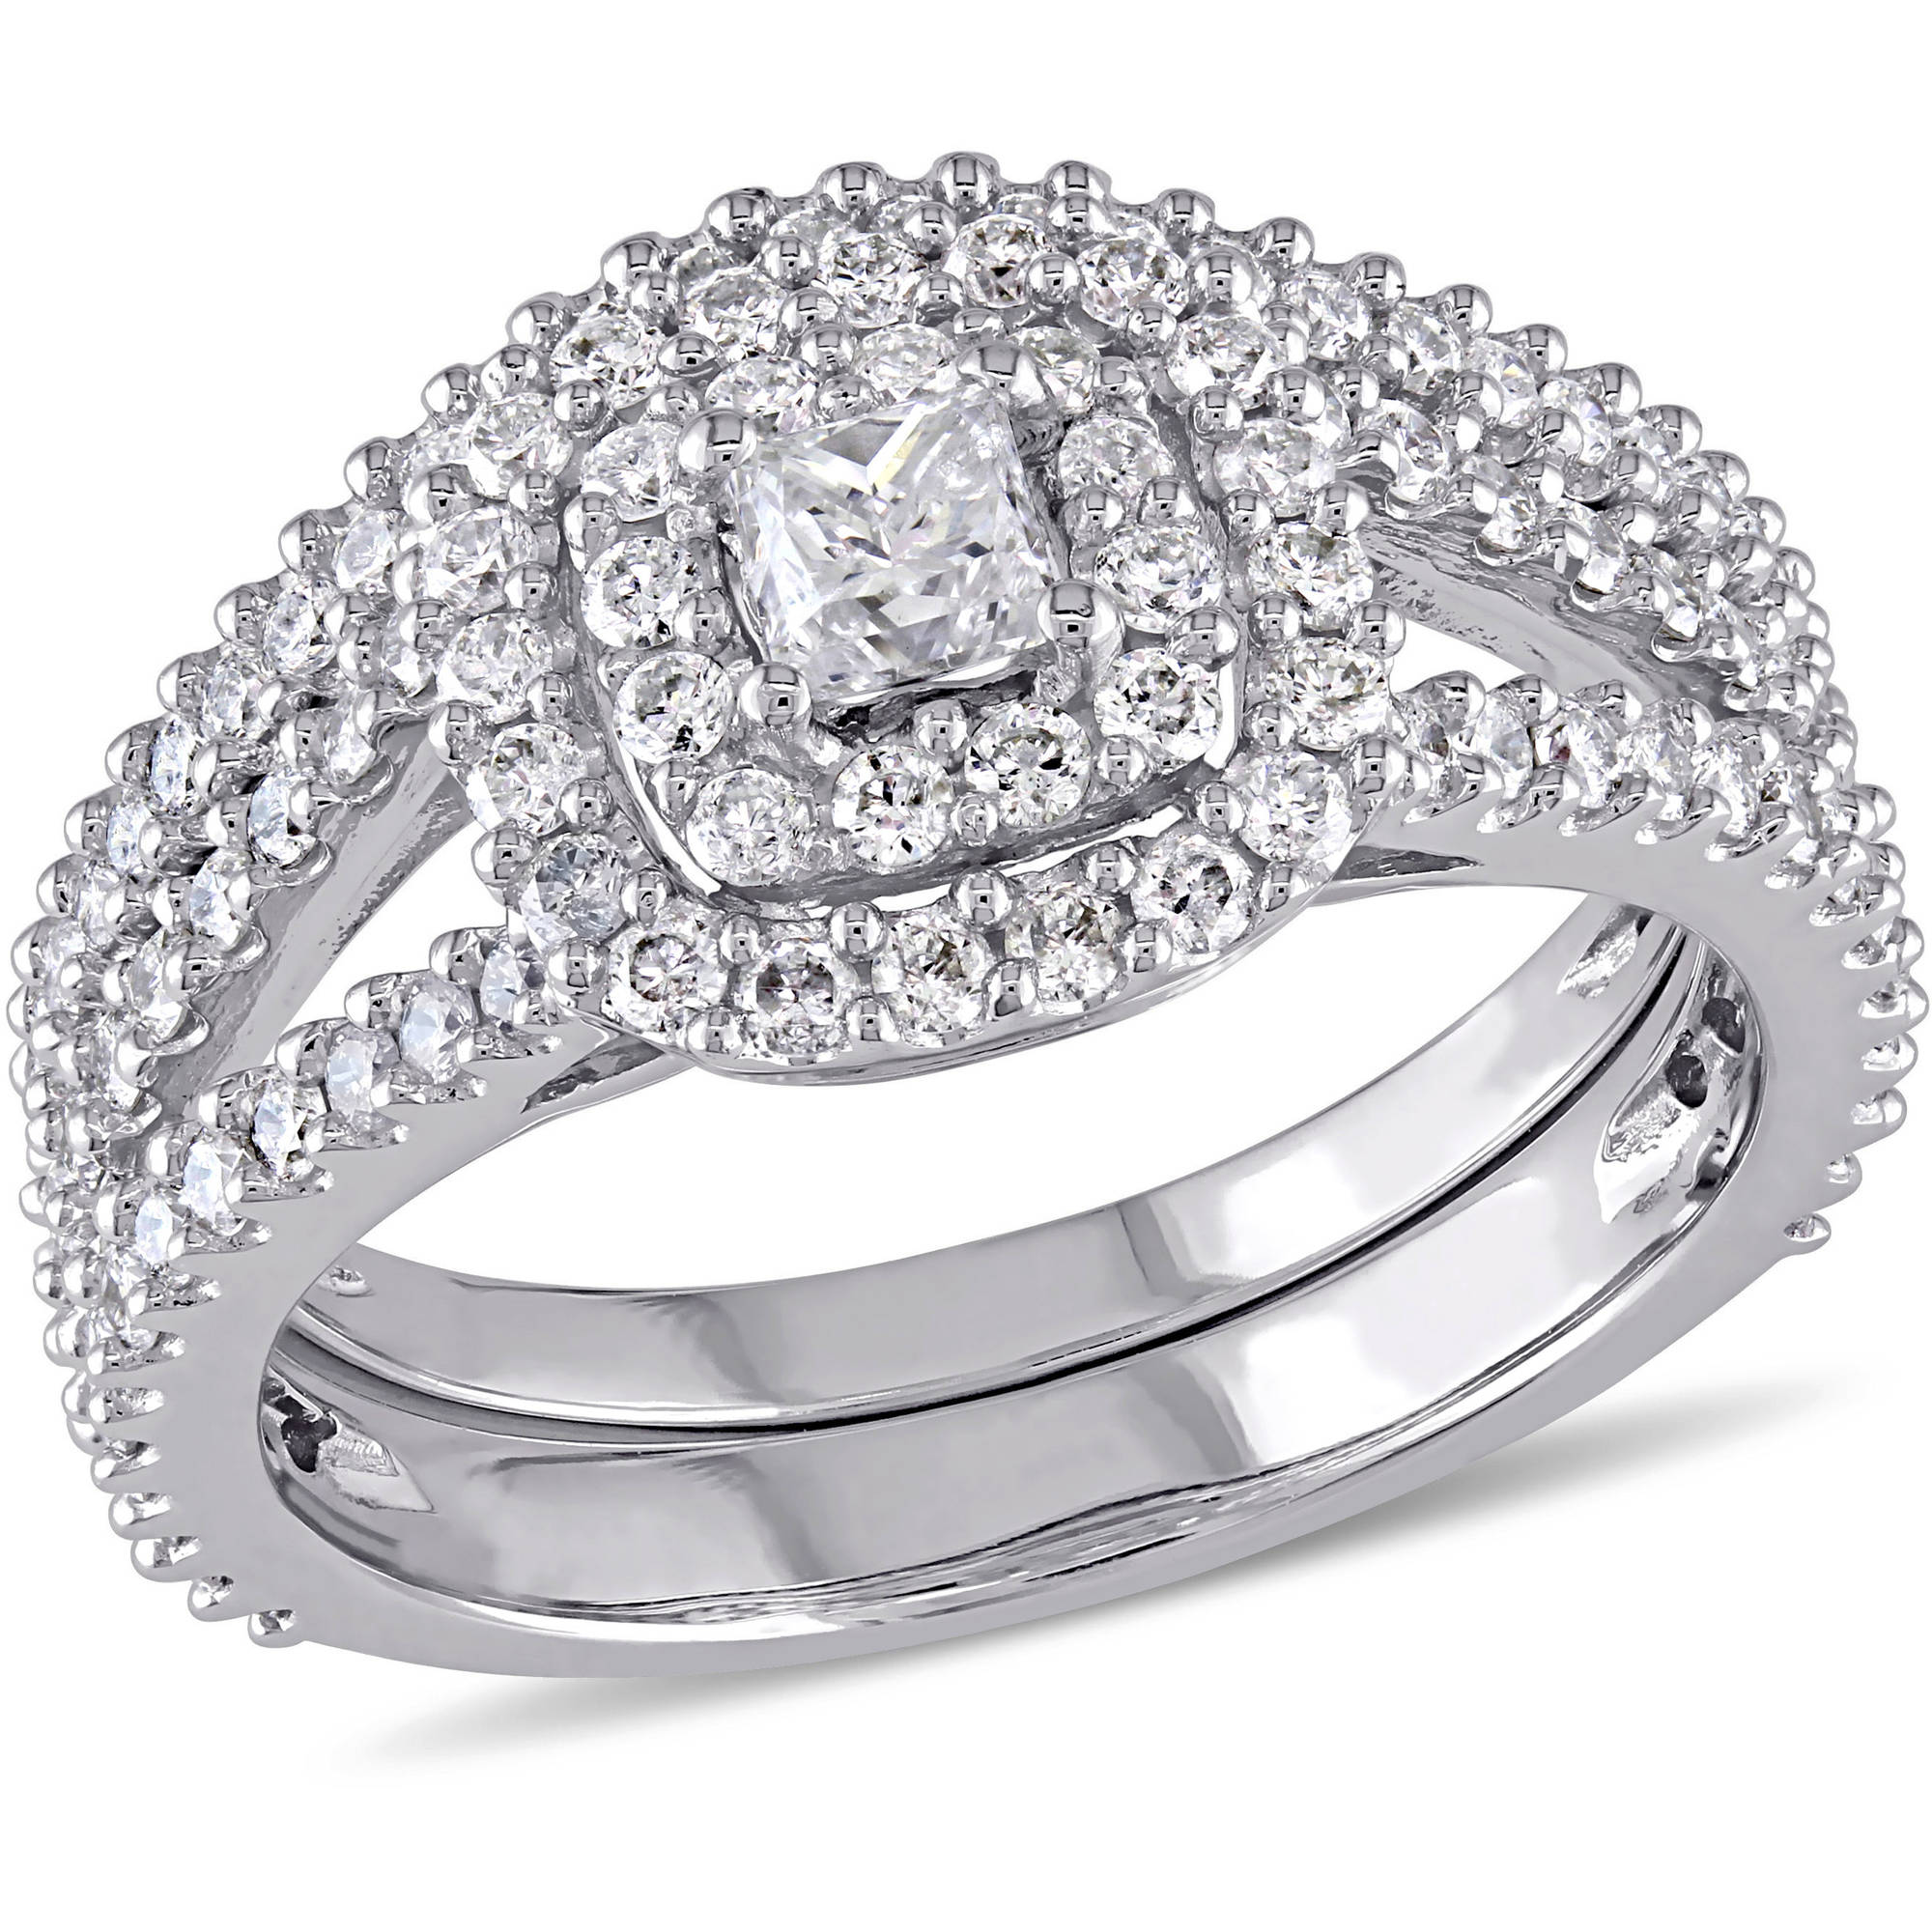 Miabella 1-1/5 Carat T.W. Princess and Round-Cut Diamond 14kt White Gold Double Halo Bridal Set